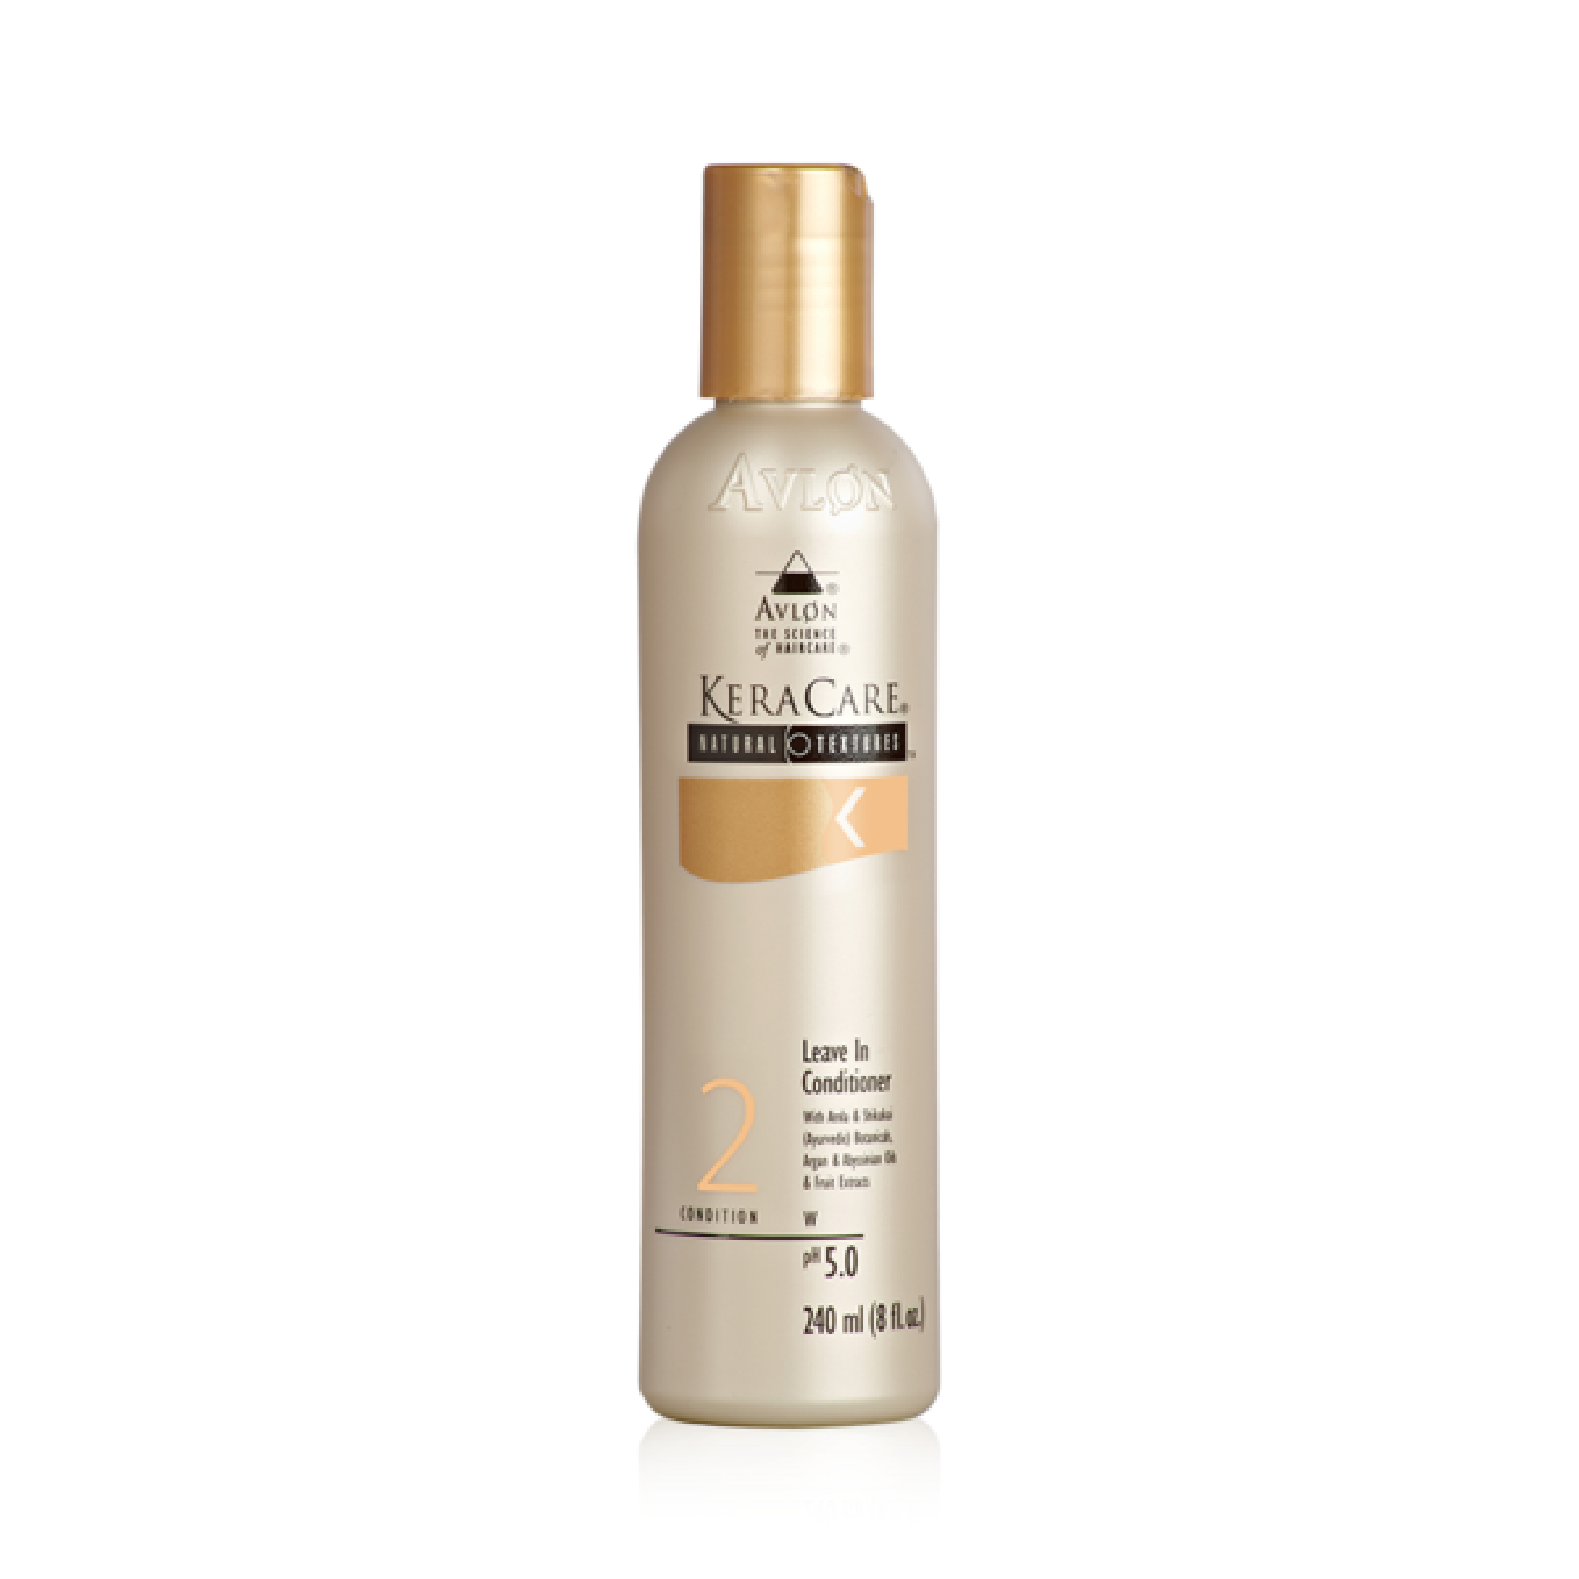 keracare-product-image-Natural-Textures-Leave-In-Conditioner_600x